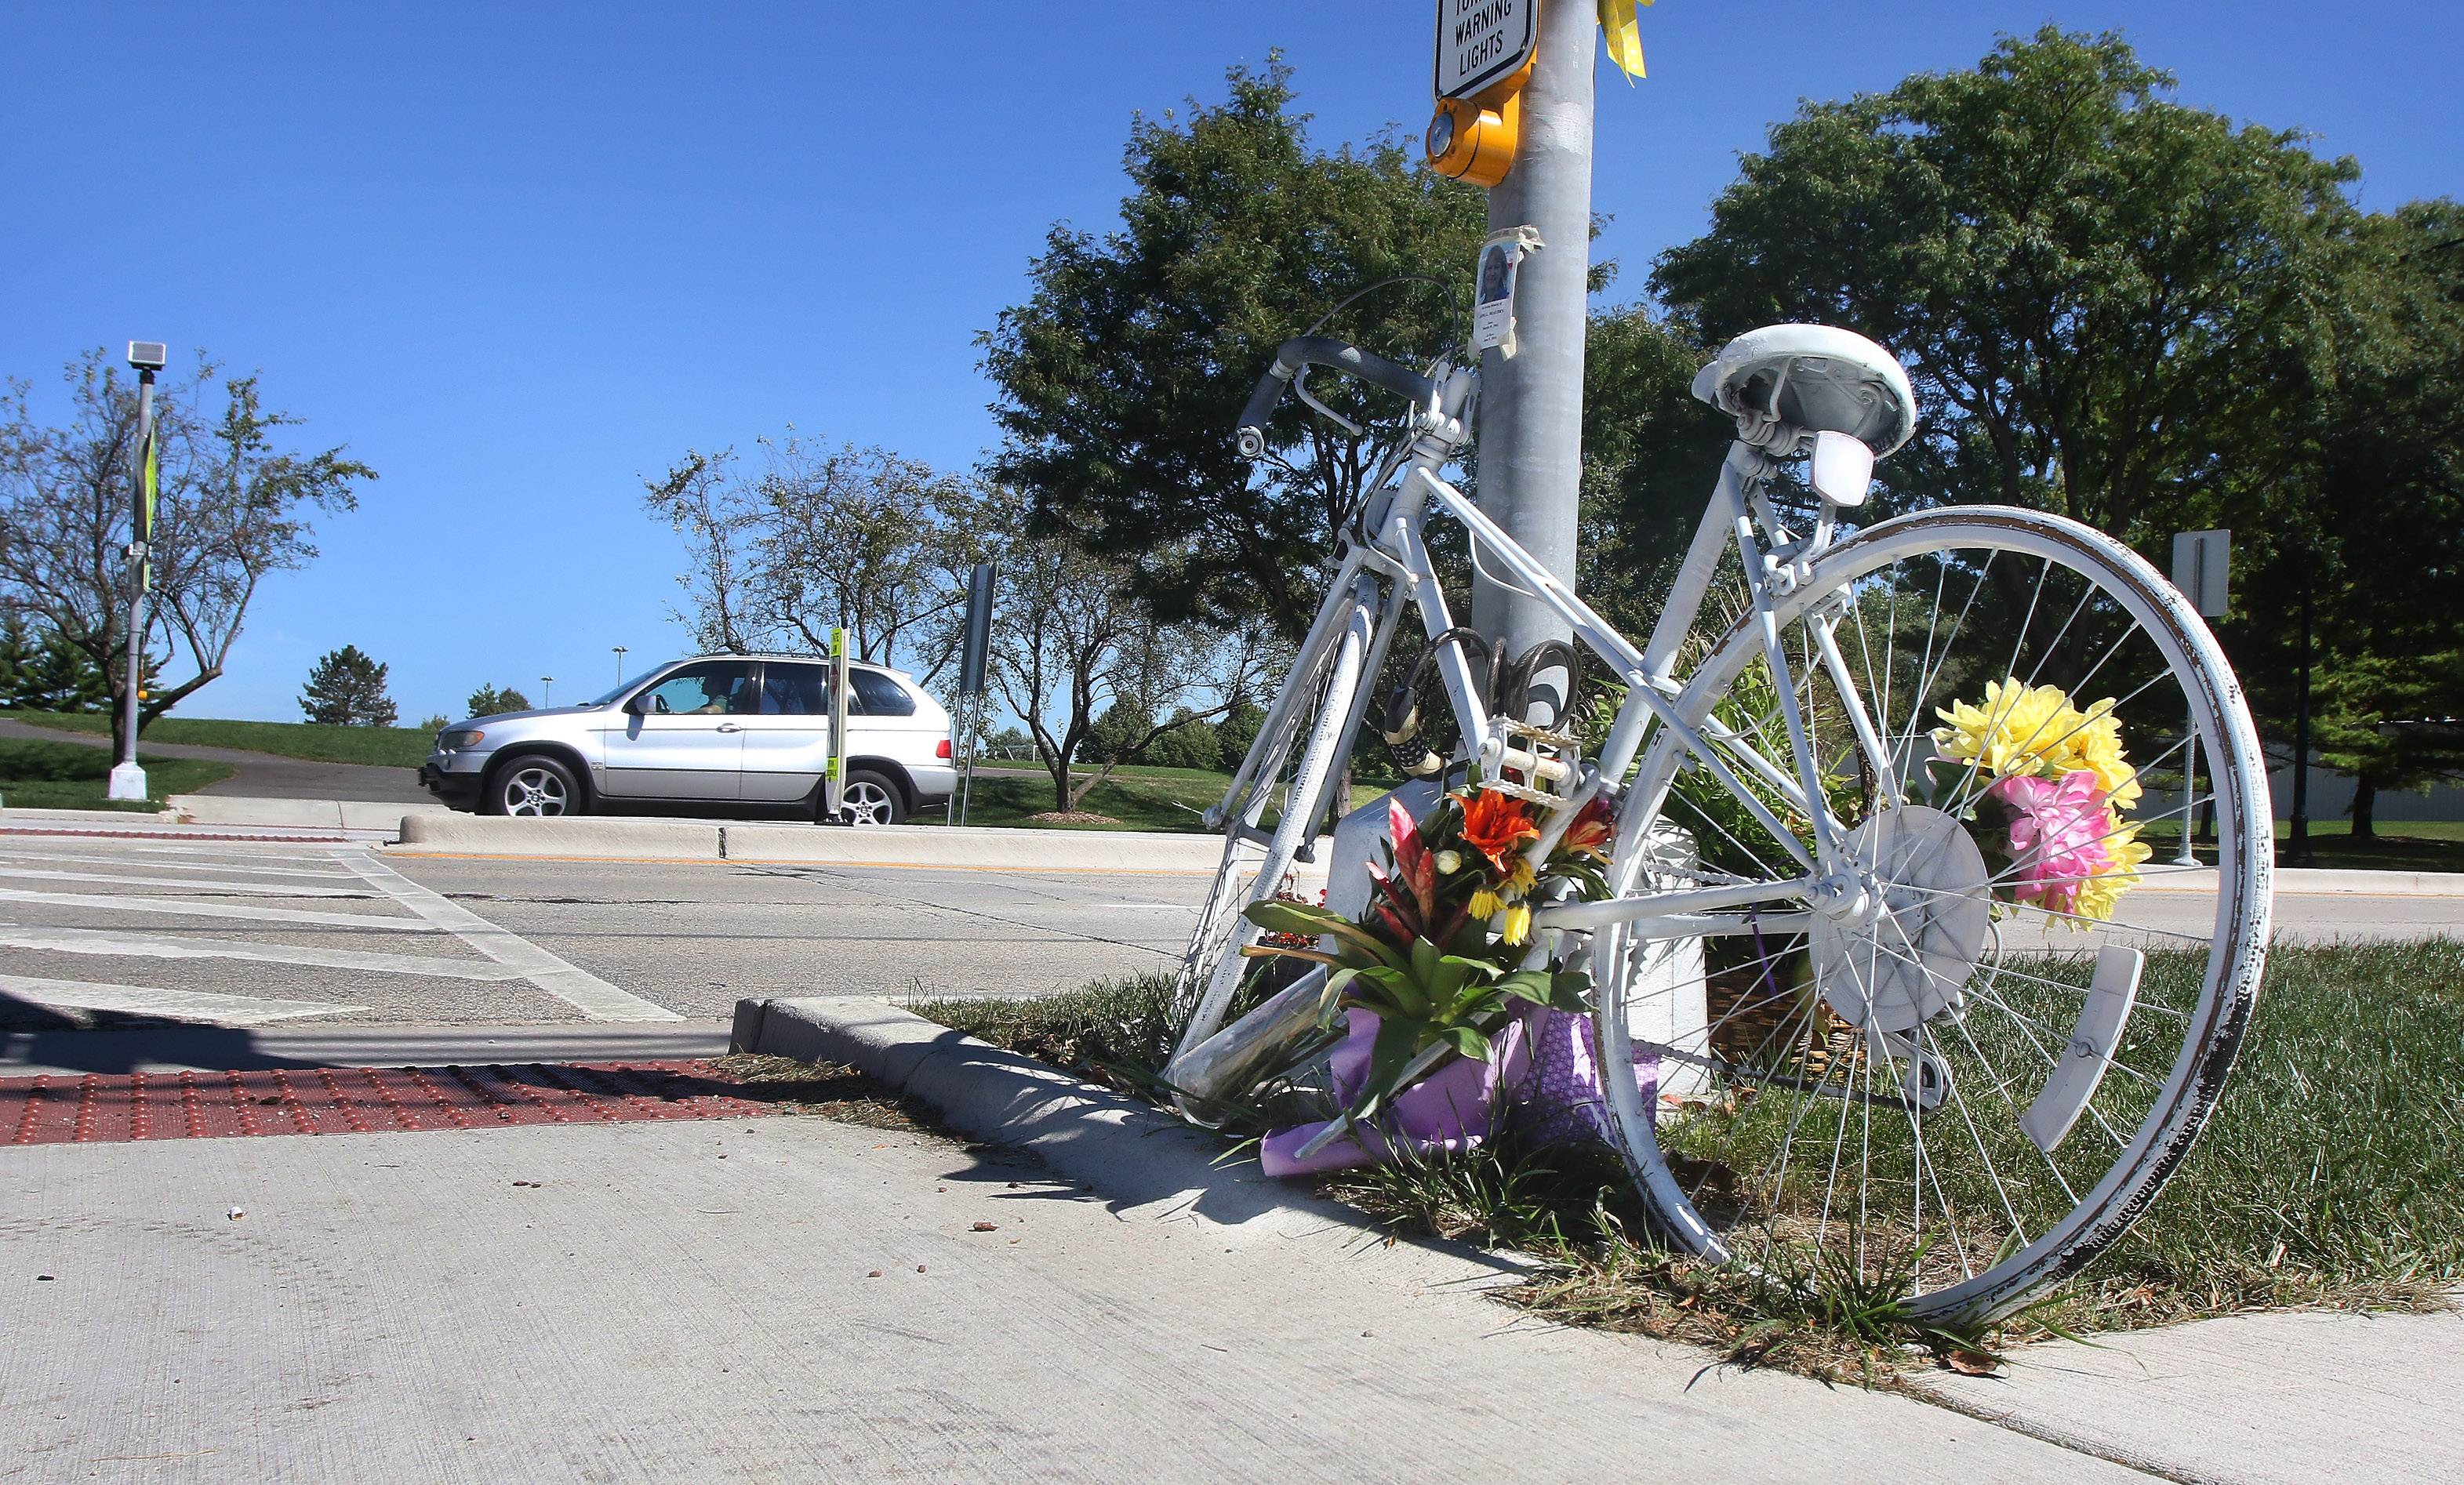 Police: New charges for driver, bicyclist partly to blame for own death